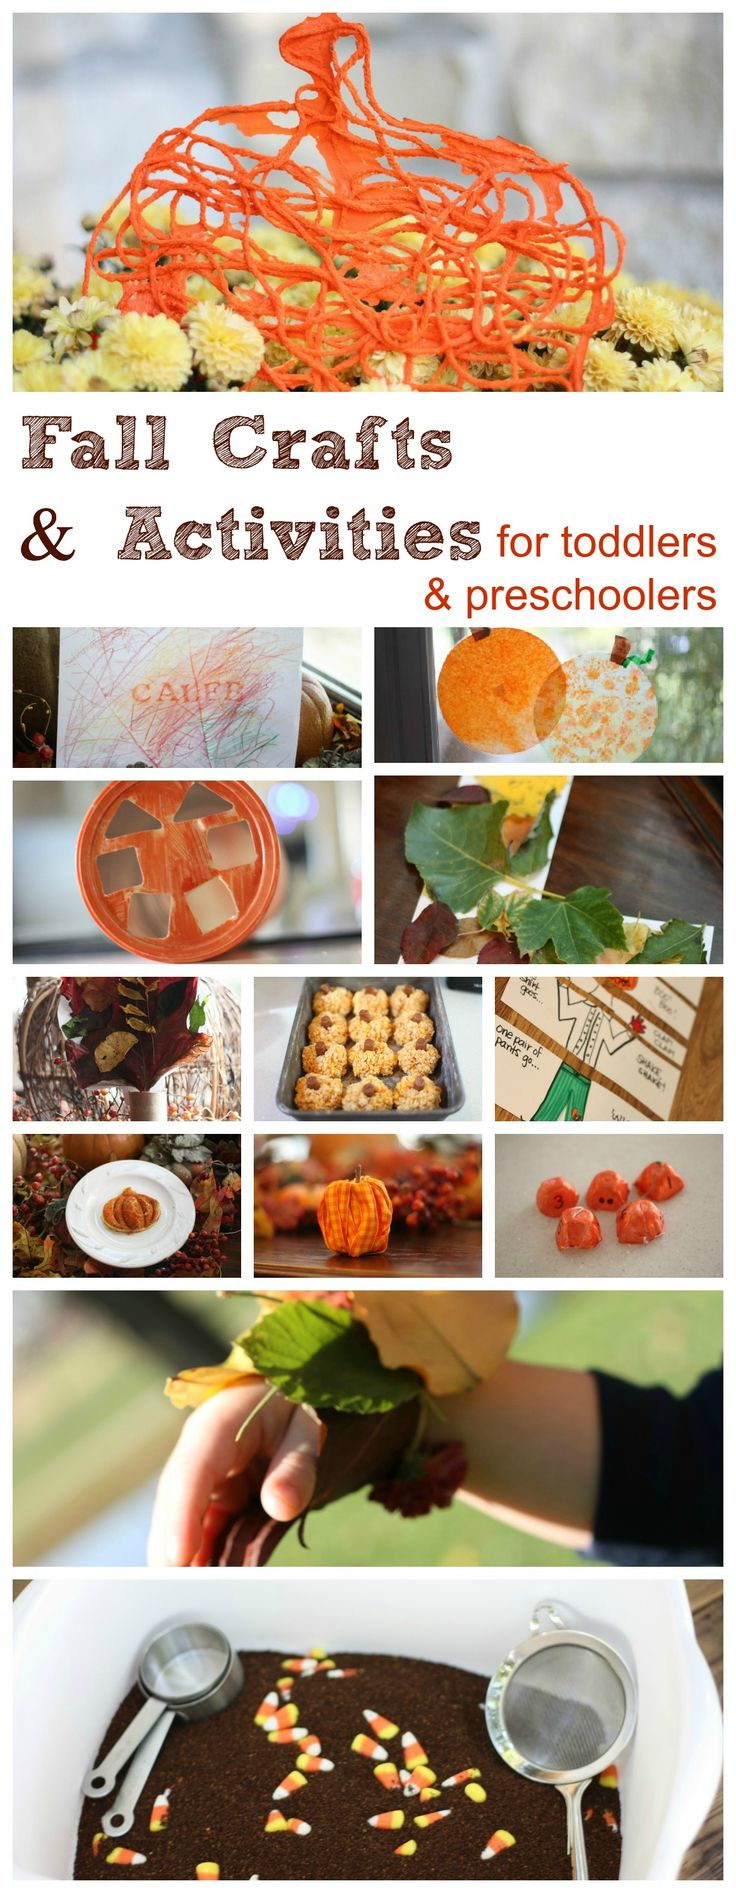 Fall Activities for Toddlers & Preschoolers. {I Can Teach My Child}: Holiday, Halloween Craft Toddler, Fall Crafts, Thanksgiving Fall, Fall Fun, Fall Activities, Fall Theme, Toddlers Preschoolers, Kid